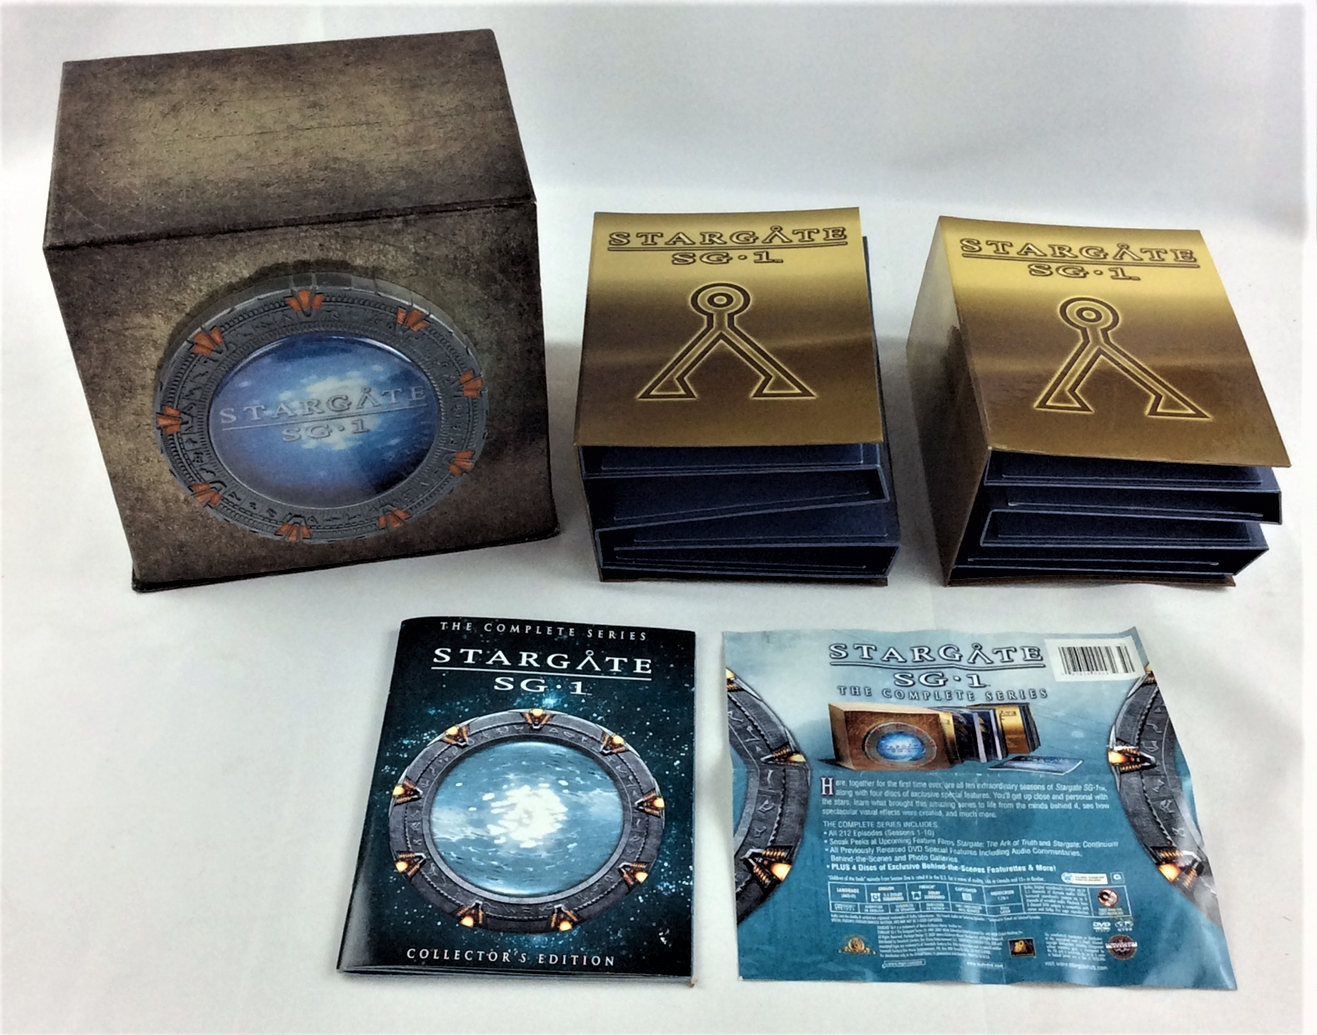 STARGATE SG-1 COMPLETE SERIES DVD SEASONS 1-10 ALL 212 EPISODES ENGLISH FRENCH - $79.99